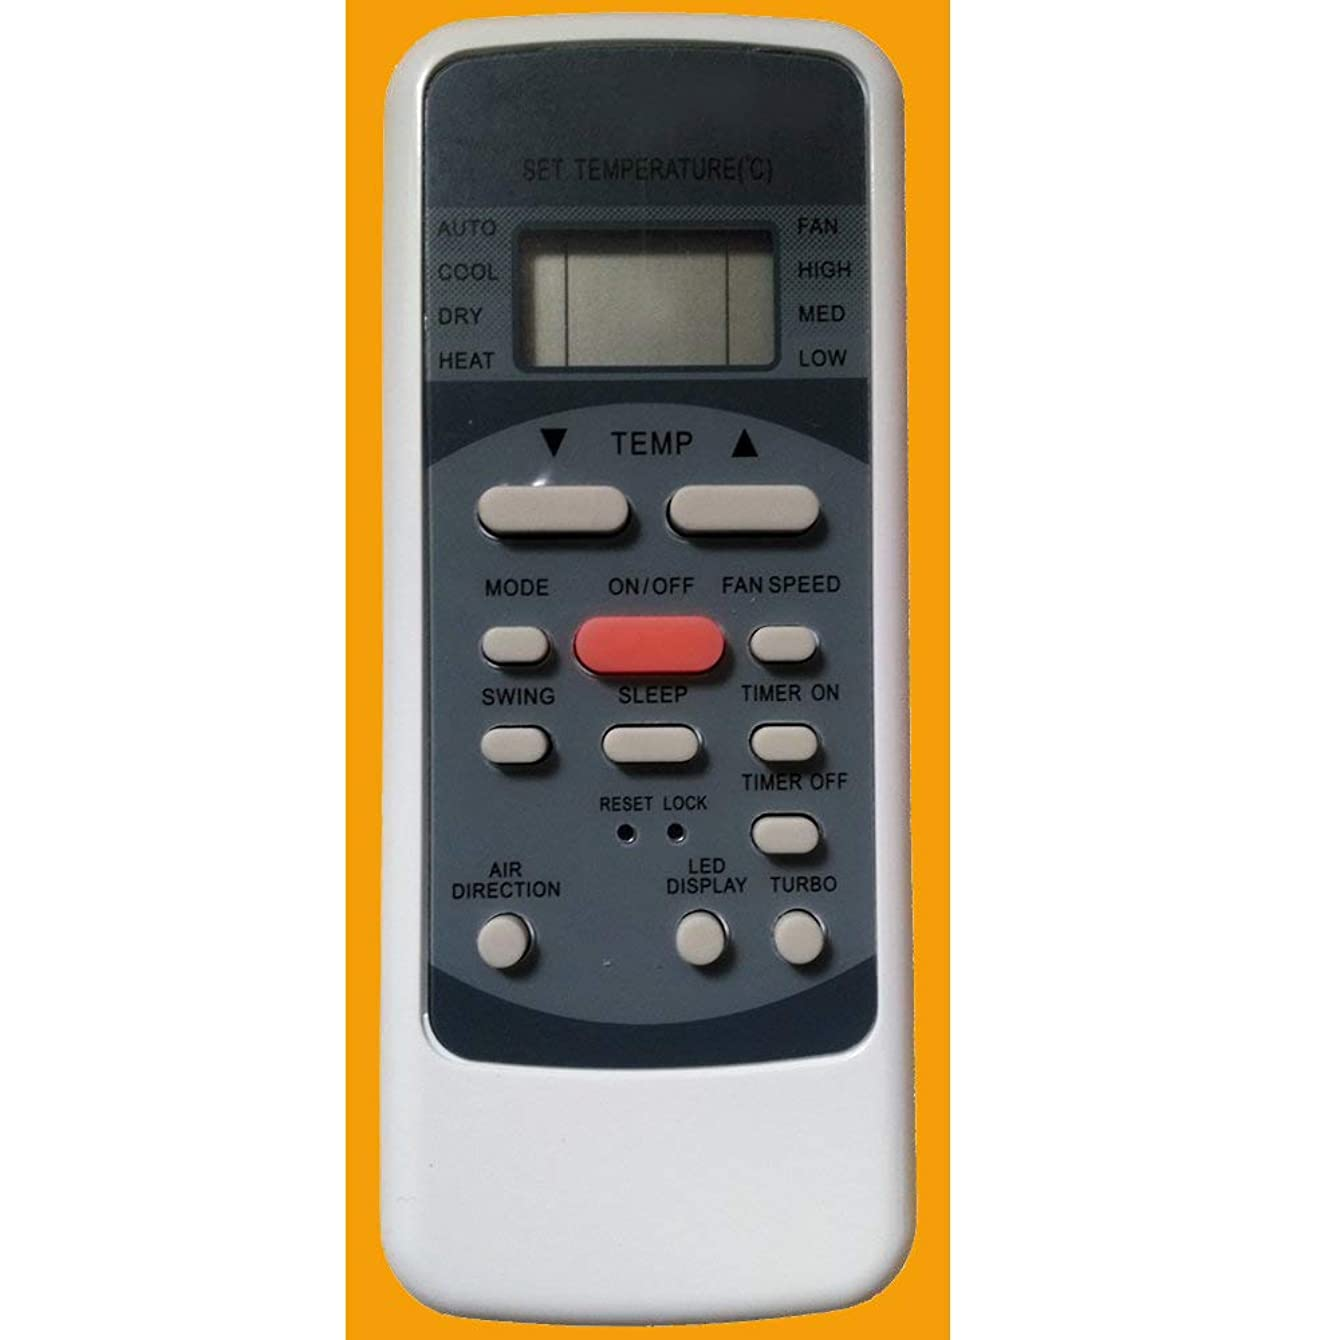 YING RAY Replacement for Heat Controller Comfort-aire Comfort aire Air Conditioner Remote Control B-VMH09SC-1 B-VMH12SC-1 B-VMH18SC-1 B-VMH24SC-1 B-VMH30SC-1 B-VMH36SC-1 (Display in Celsius)